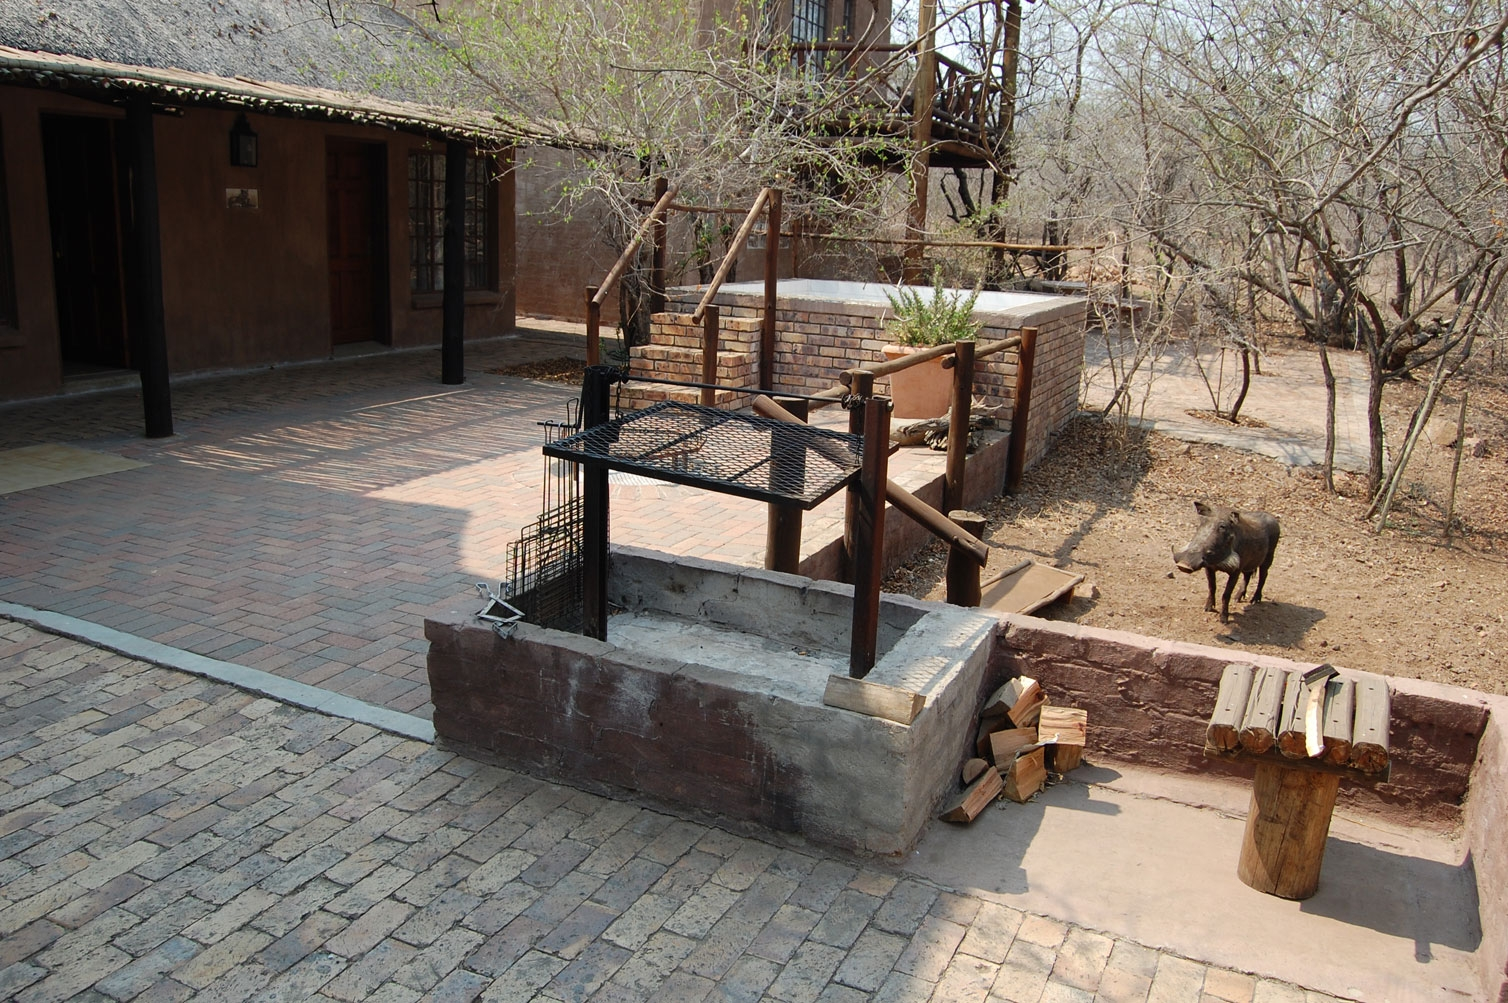 Braai / Barbeque area